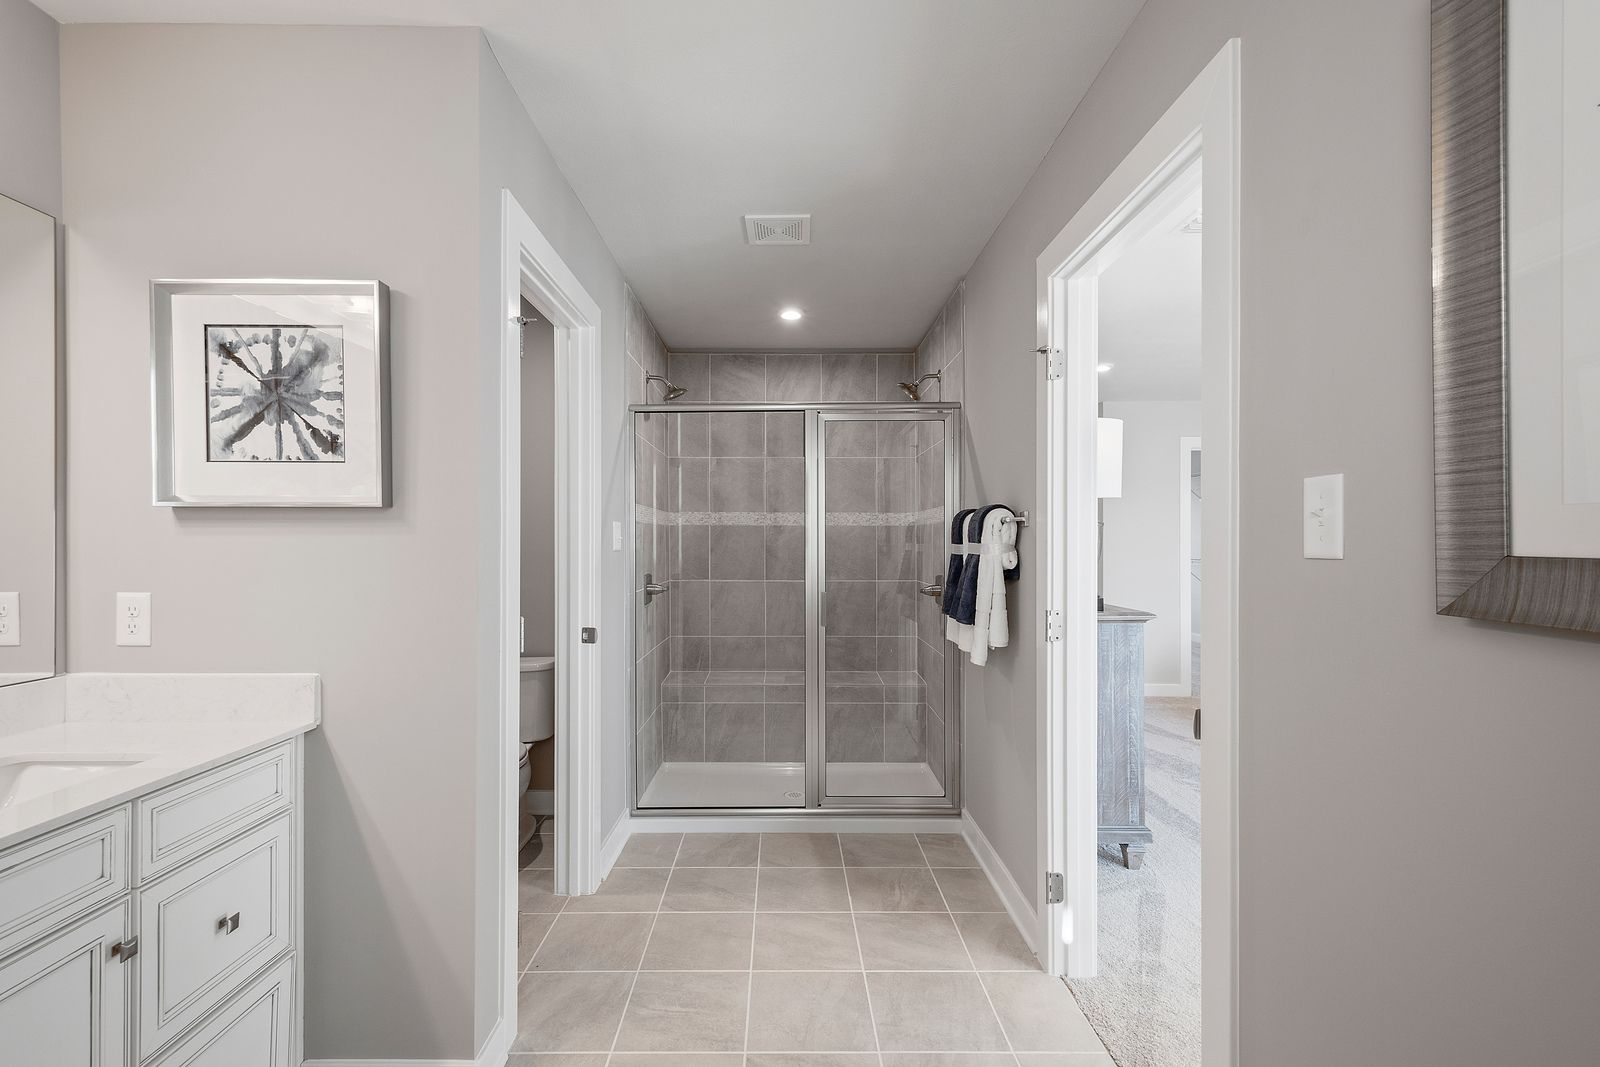 Bathroom featured in the Columbia w/ Optional Finished Basement By Ryan Homes in Chicago, IL